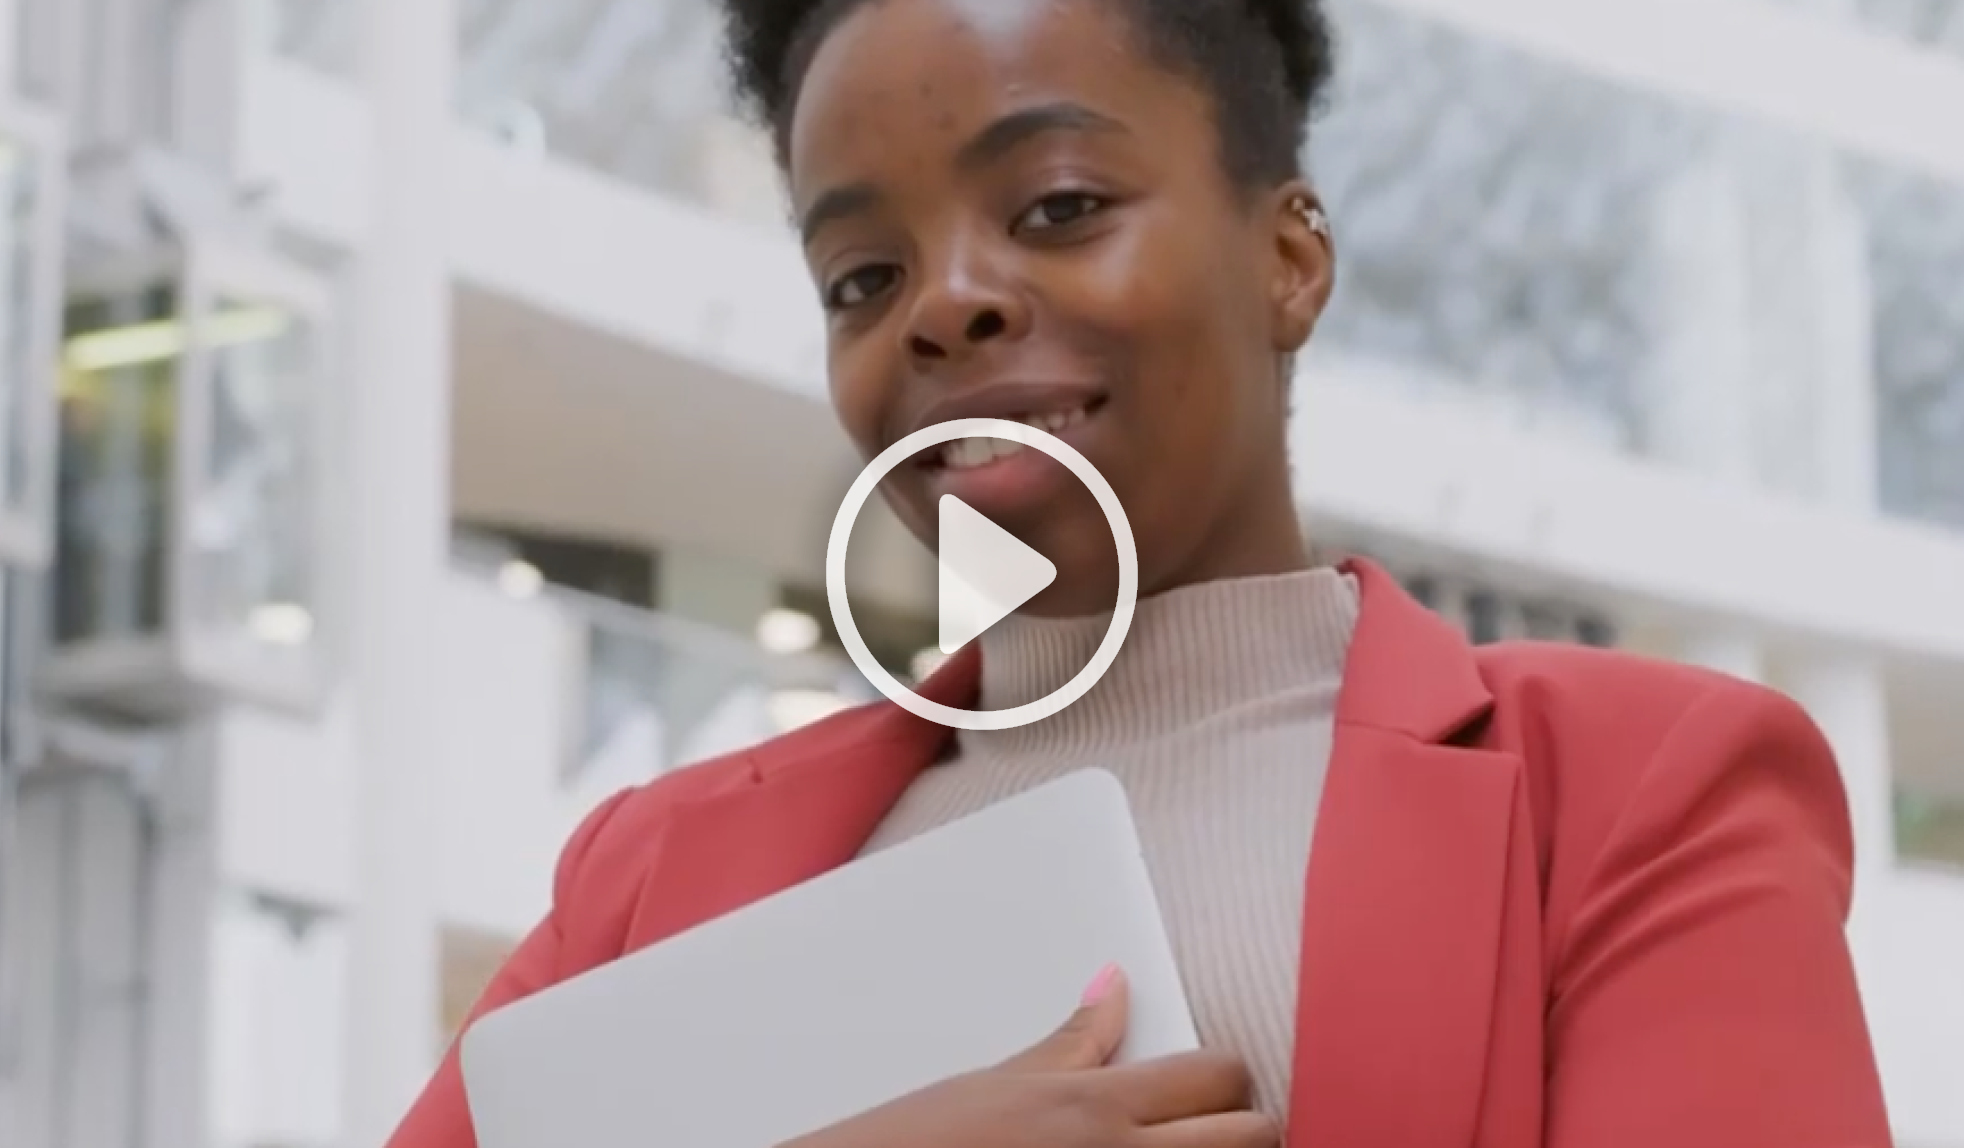 Watch the Job and Business Academy's video for five resume quick tips!